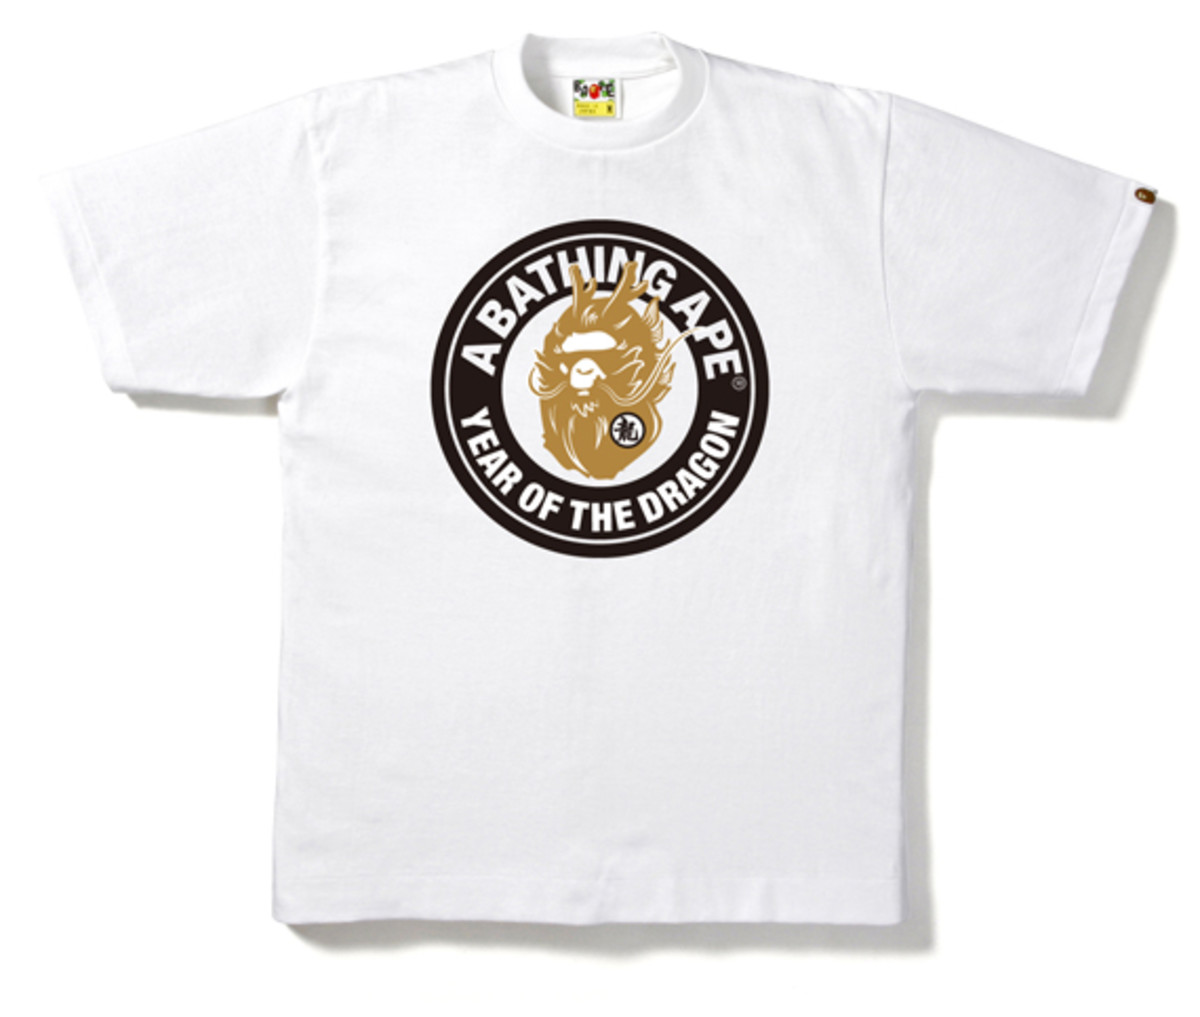 a-bathing-ape-year-of-the-dragon-t-shirt-01